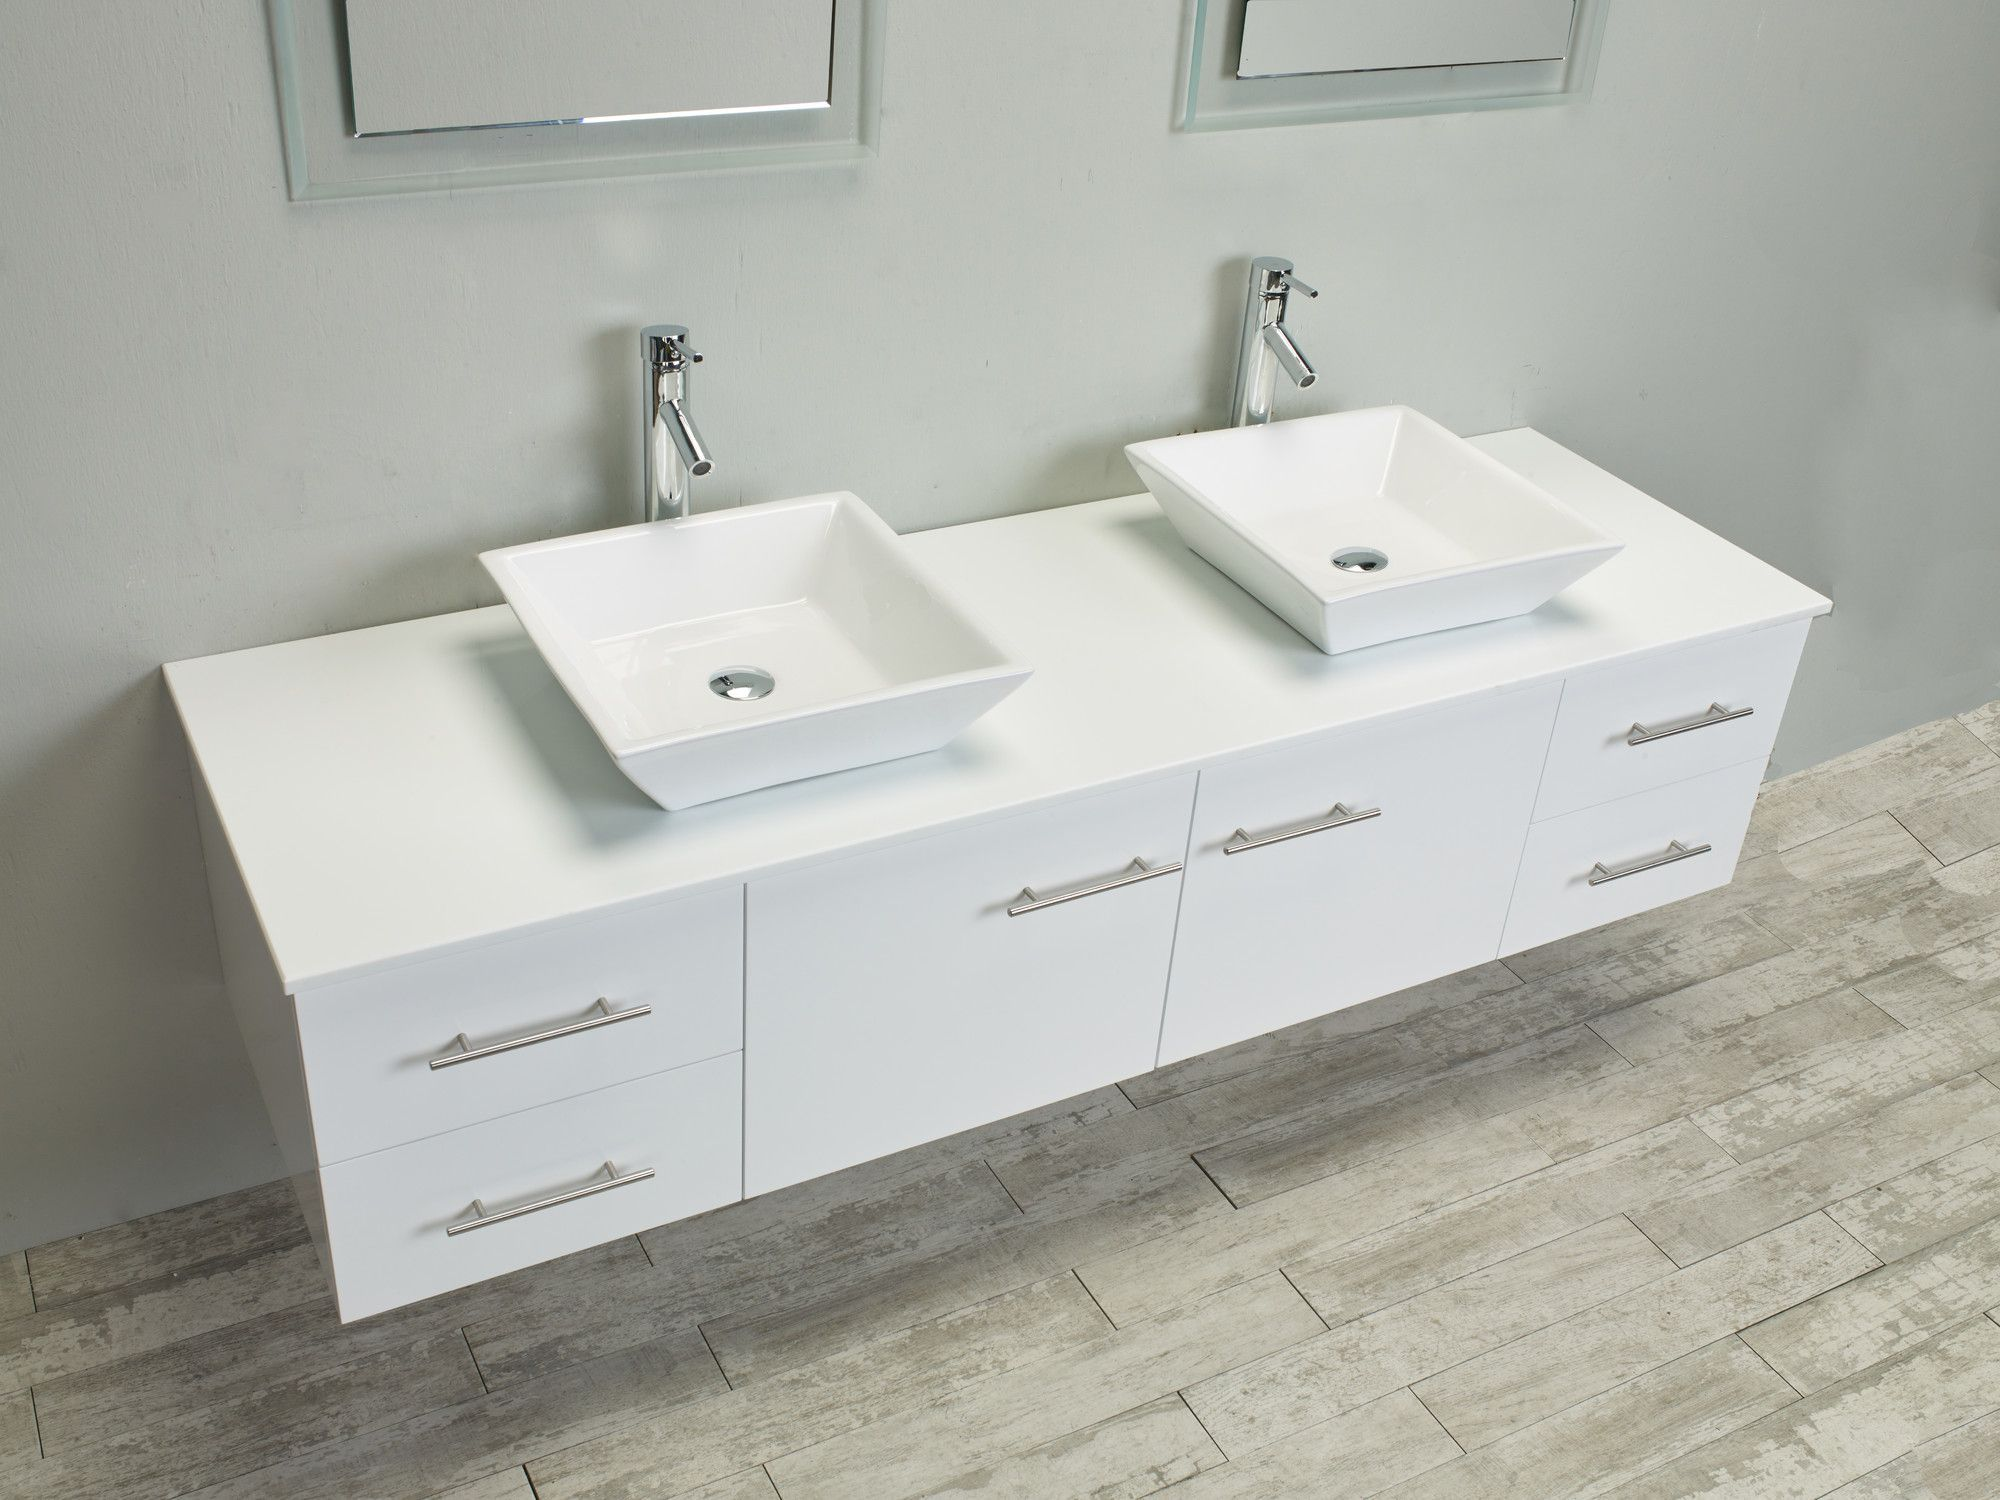 Eviva Totti Wave 60 Inch White Modern Double Sink Bathroom Vanity With Counter Top And Do Double Sink Bathroom Vanity Double Sink Bathroom Bathroom Vanity Tops White double sink vanity 60 inch